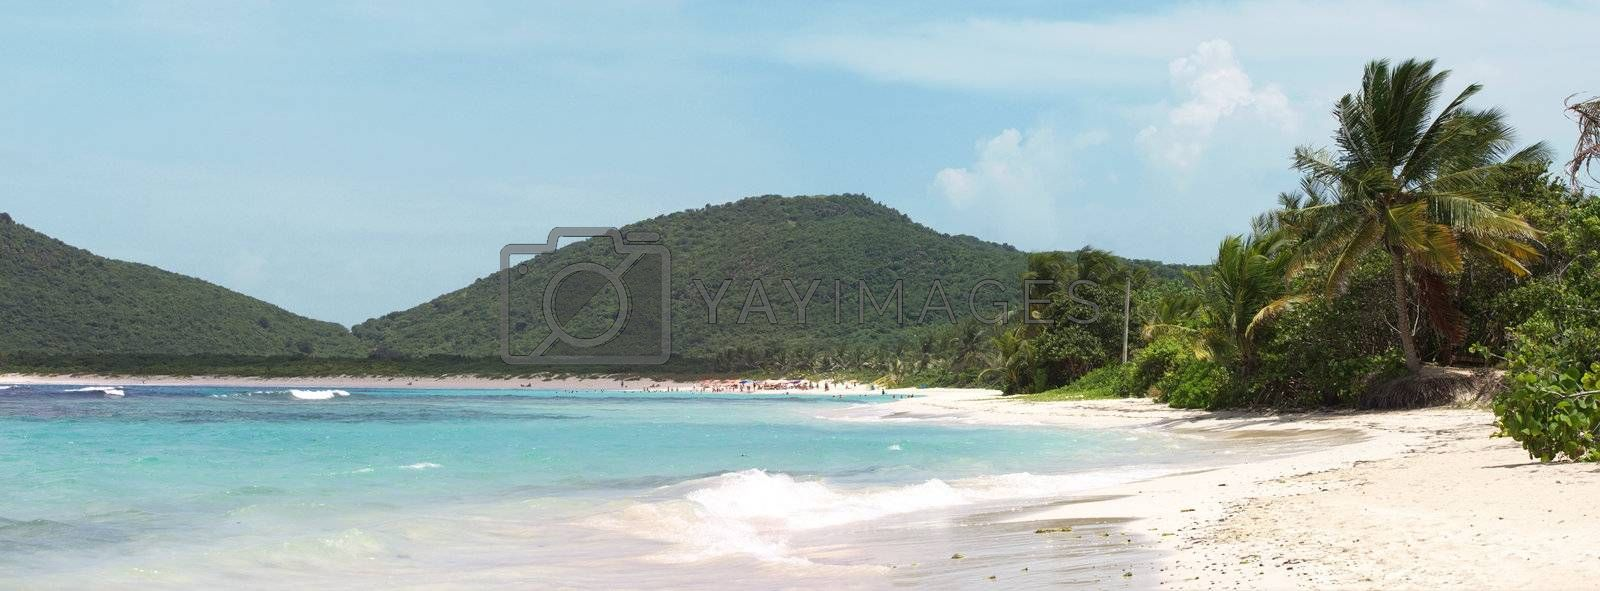 The amazing clear blue Caribbean water and white sands of Flamenco beach on the Puerto Rican island of Culebra.